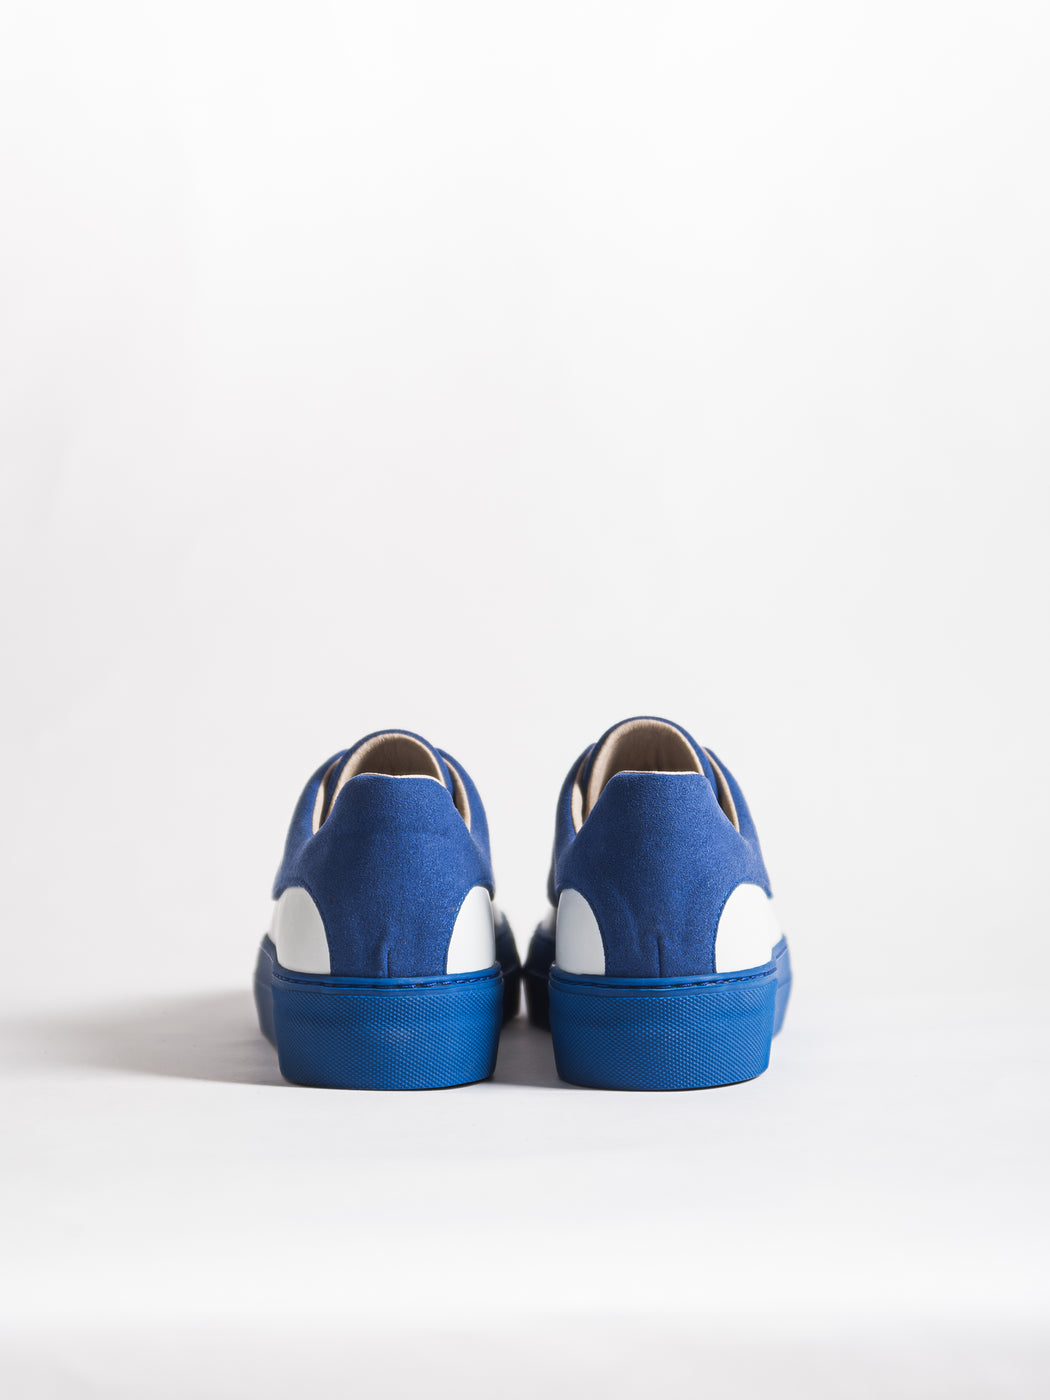 Laureline | Shoes | Marita Moreno | [product_tag] - Fair Bazaar Ethical Living